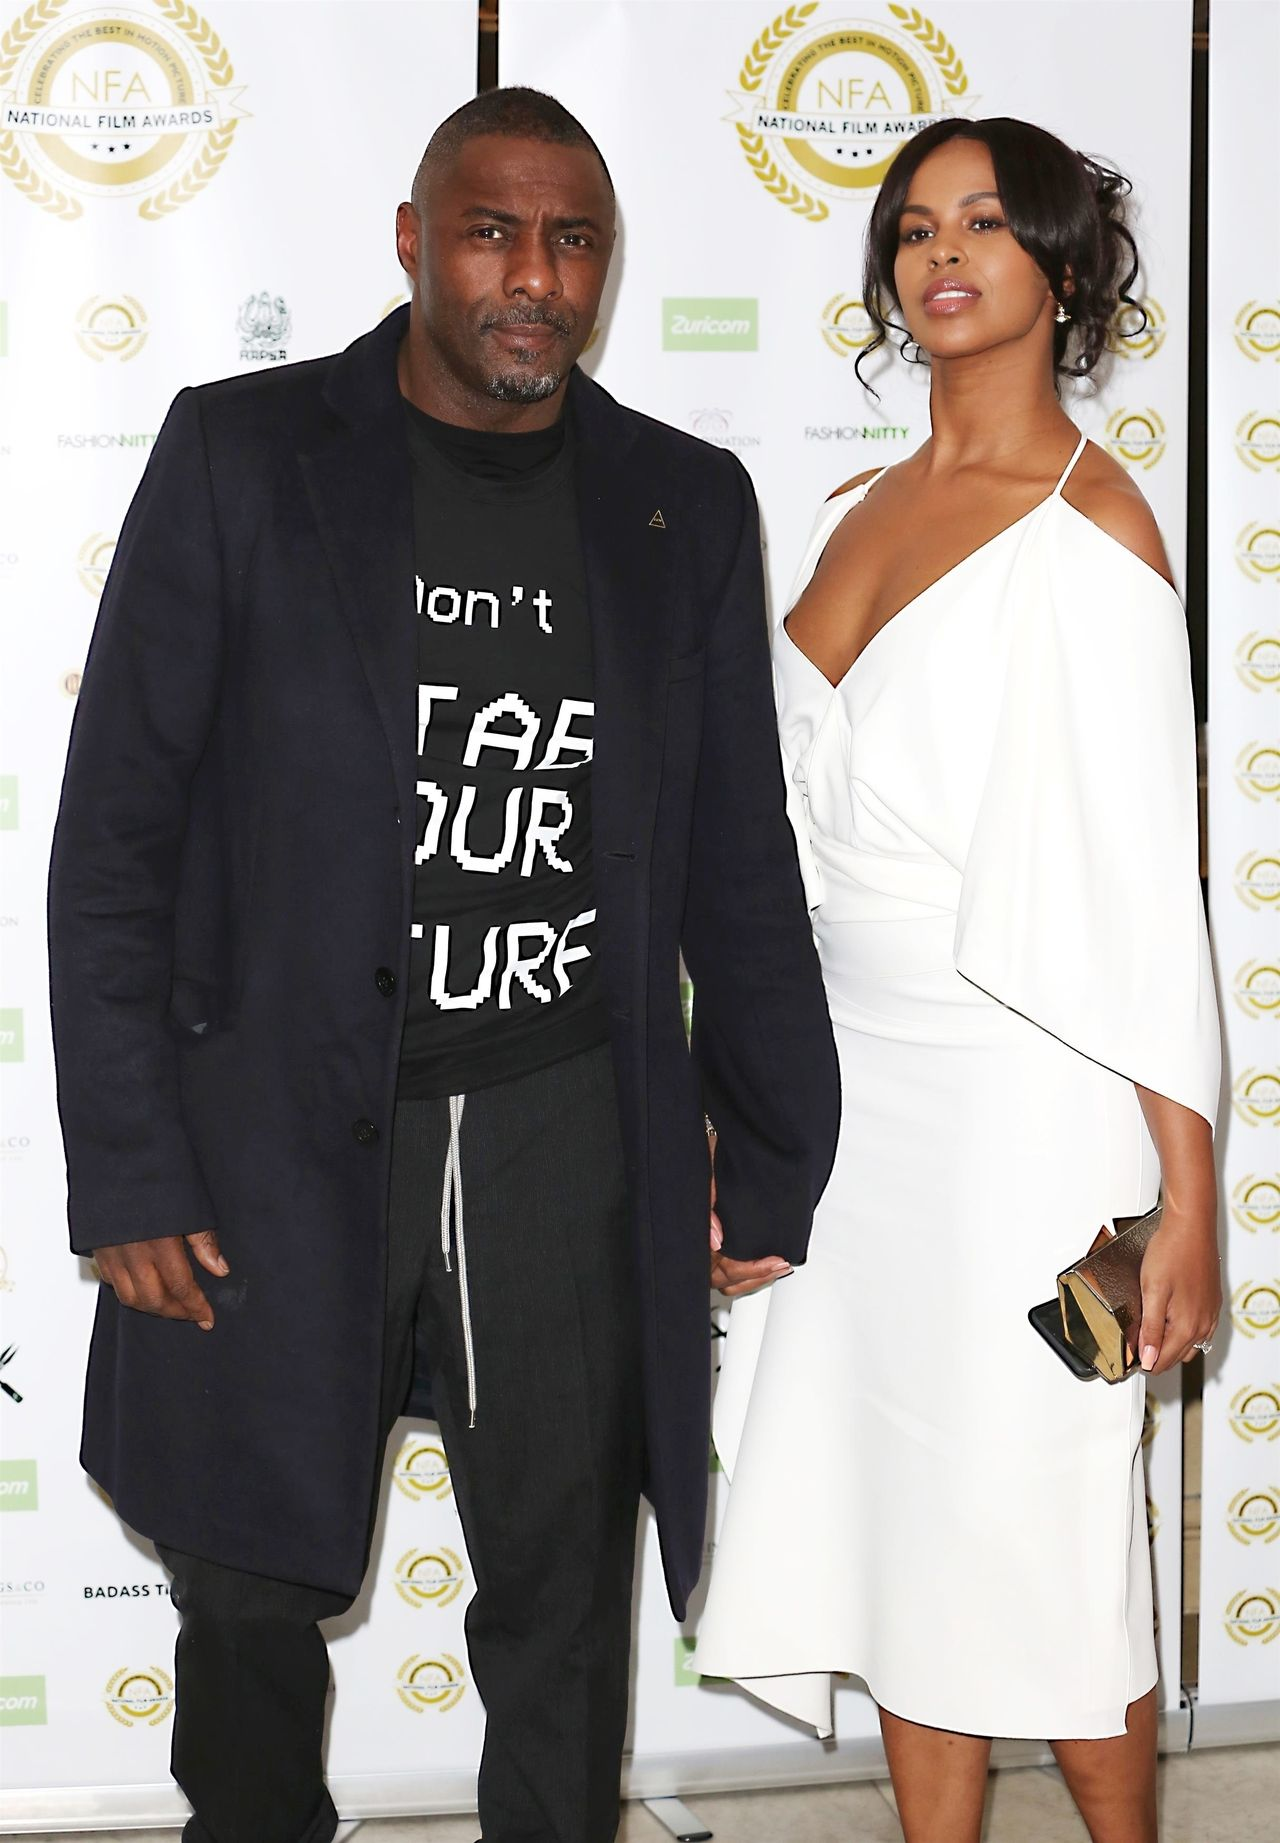 Celebrities at The National Film Awards 2019 / WLHN / BACKGRID , kod: Idris Elba, Sabrina Dhowre